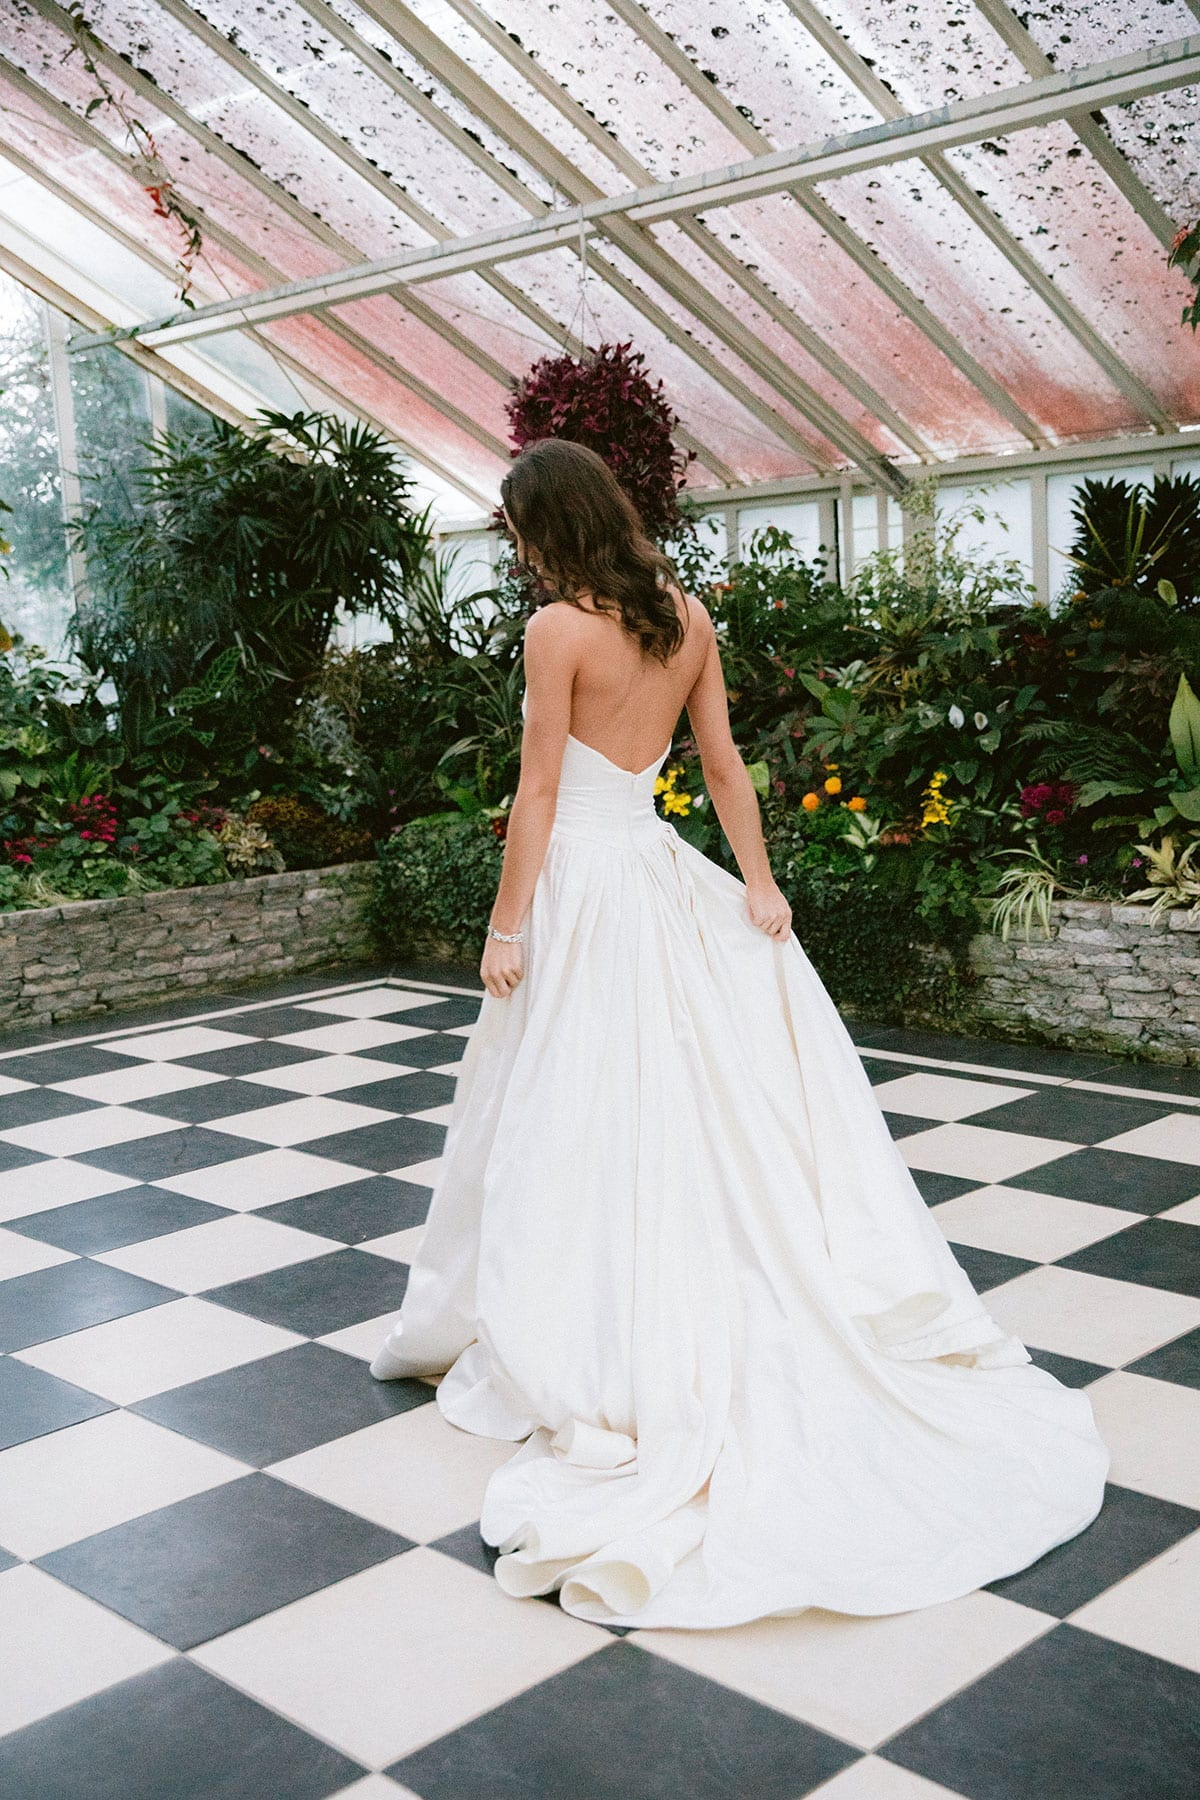 Model wearing Vinka Design Germaine Wedding Dress, a strapless dramatic wedding dress with split in a botanical garden greenhouse facing away with train along ground